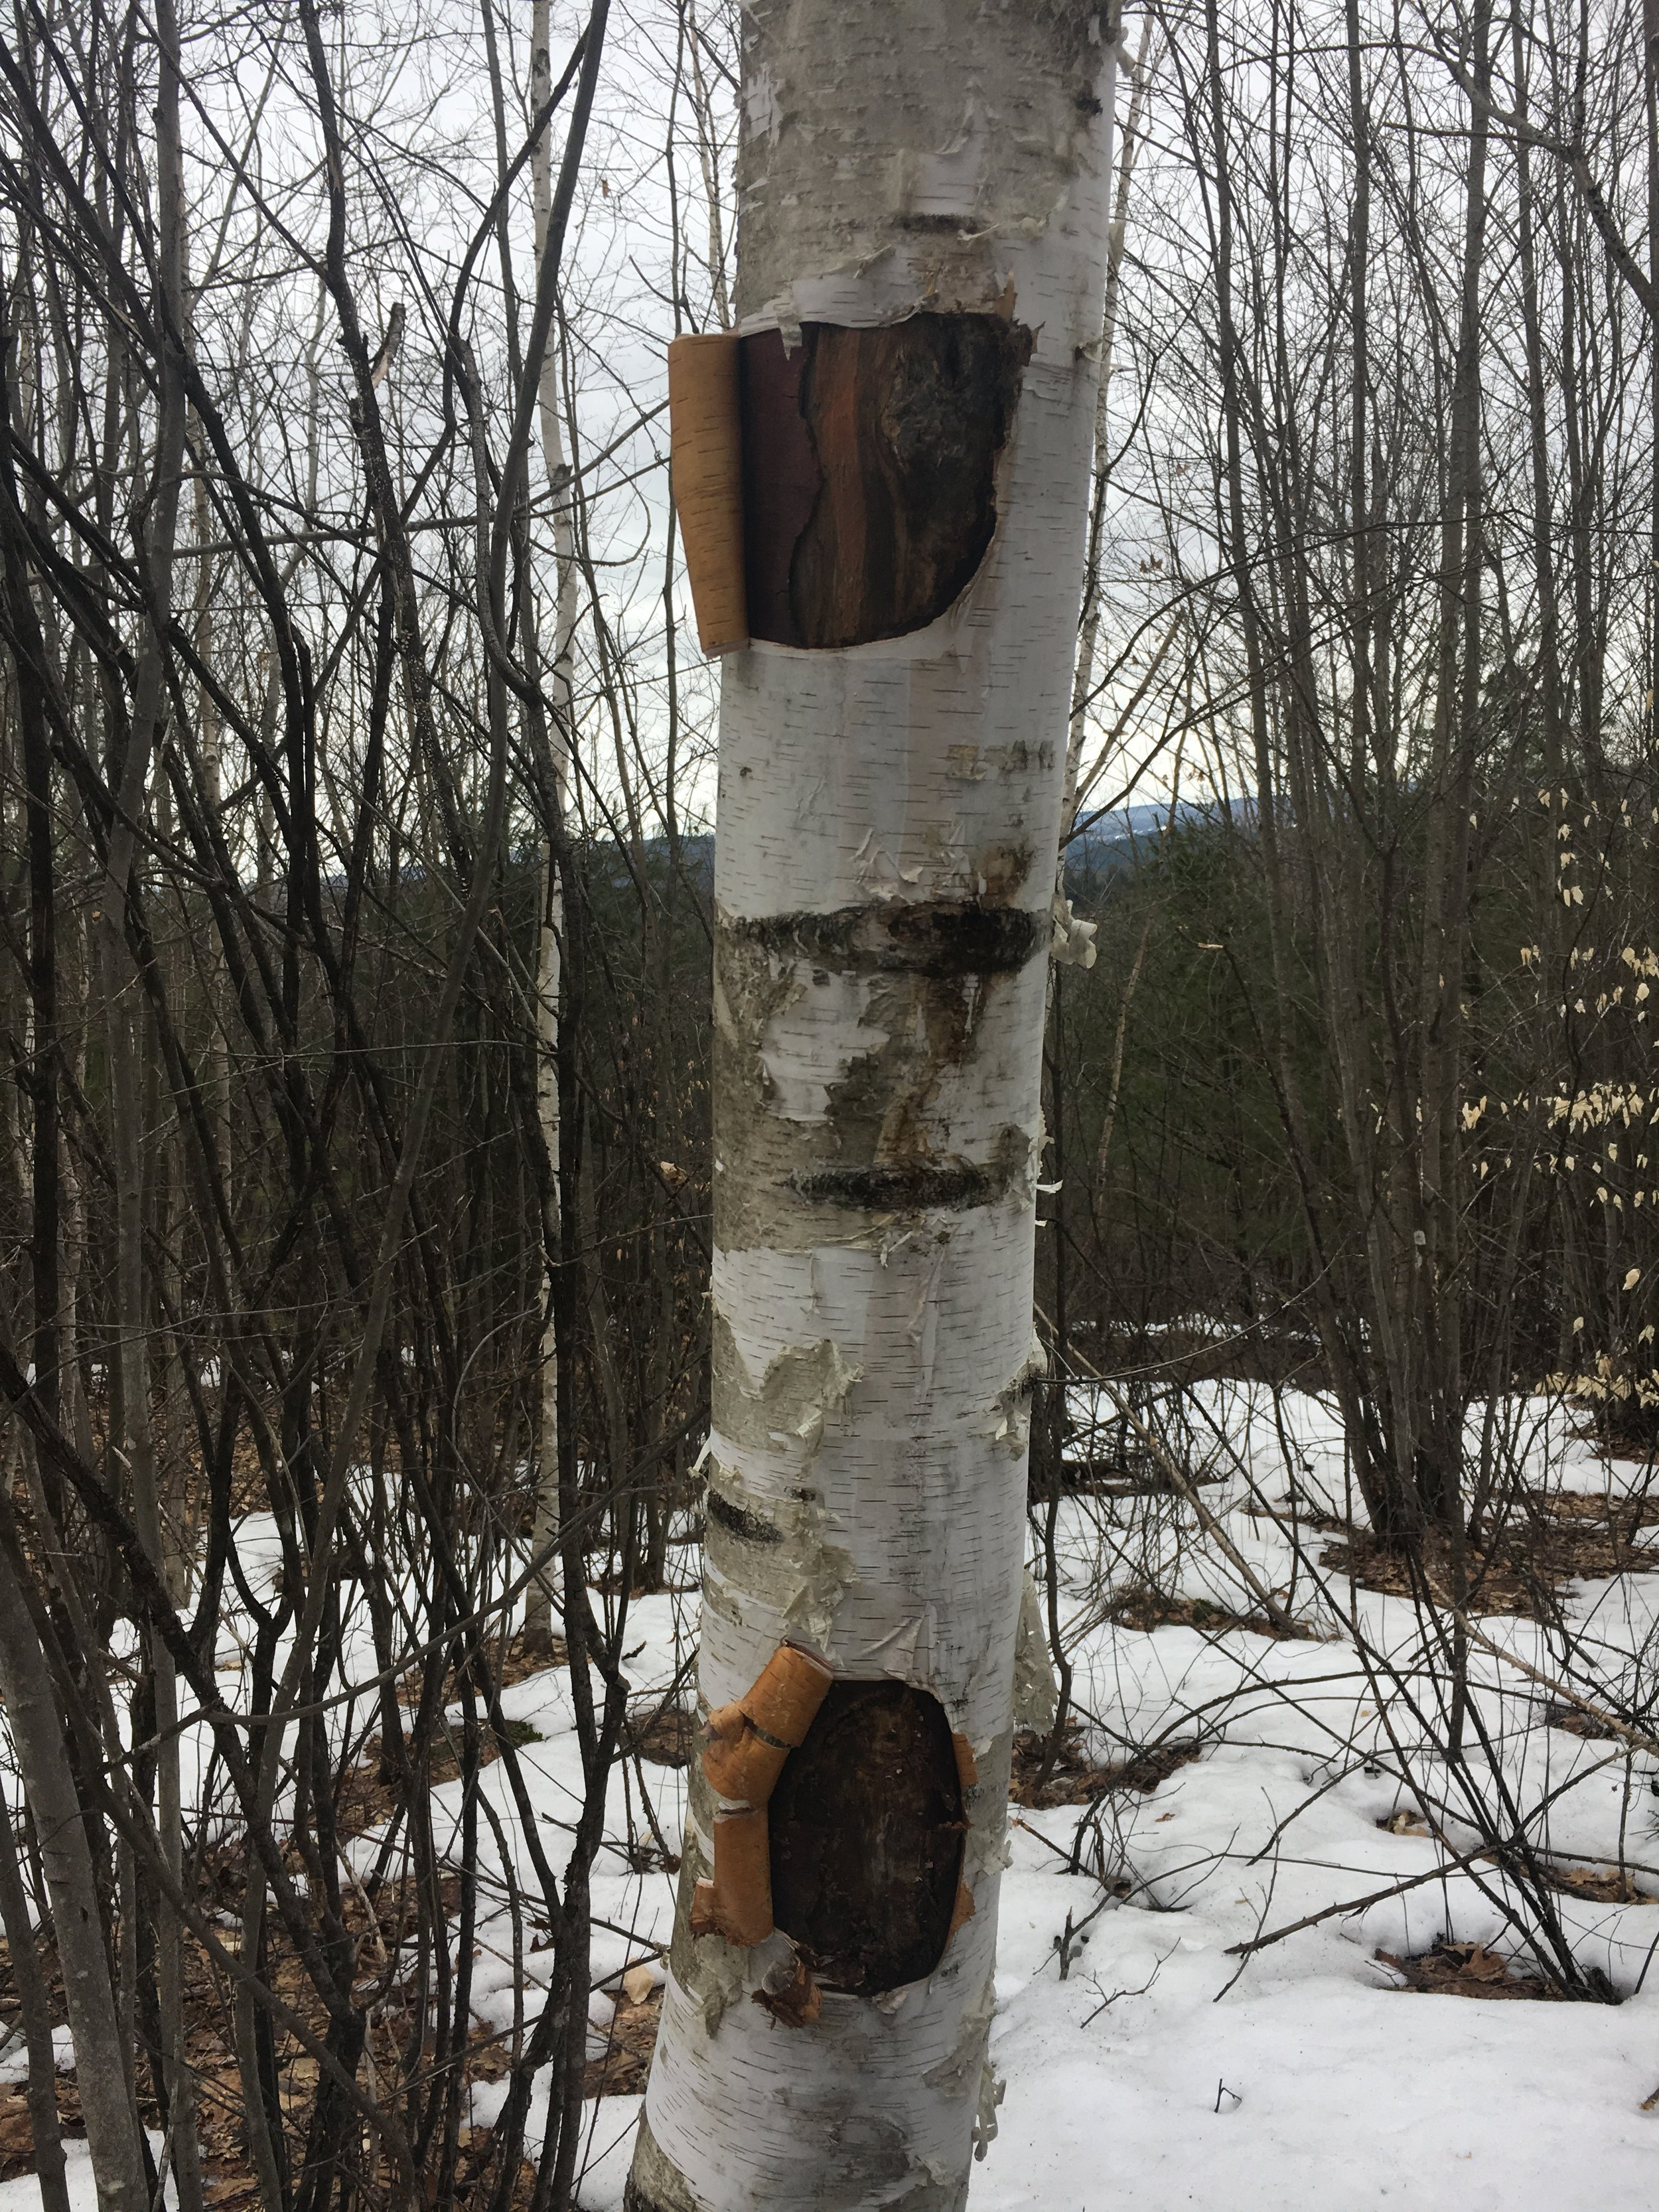 We search for inspiration in the birch trees. They linger by our cottage, a cape nestled in a clutch of woods at the base of Gillette and Jericho Hills in Windsor County, Vermont. Pine, maples, and birch are everywhere. They may be common, but you will remember meeting one in a thicket, if you happen to notice it on your walk.